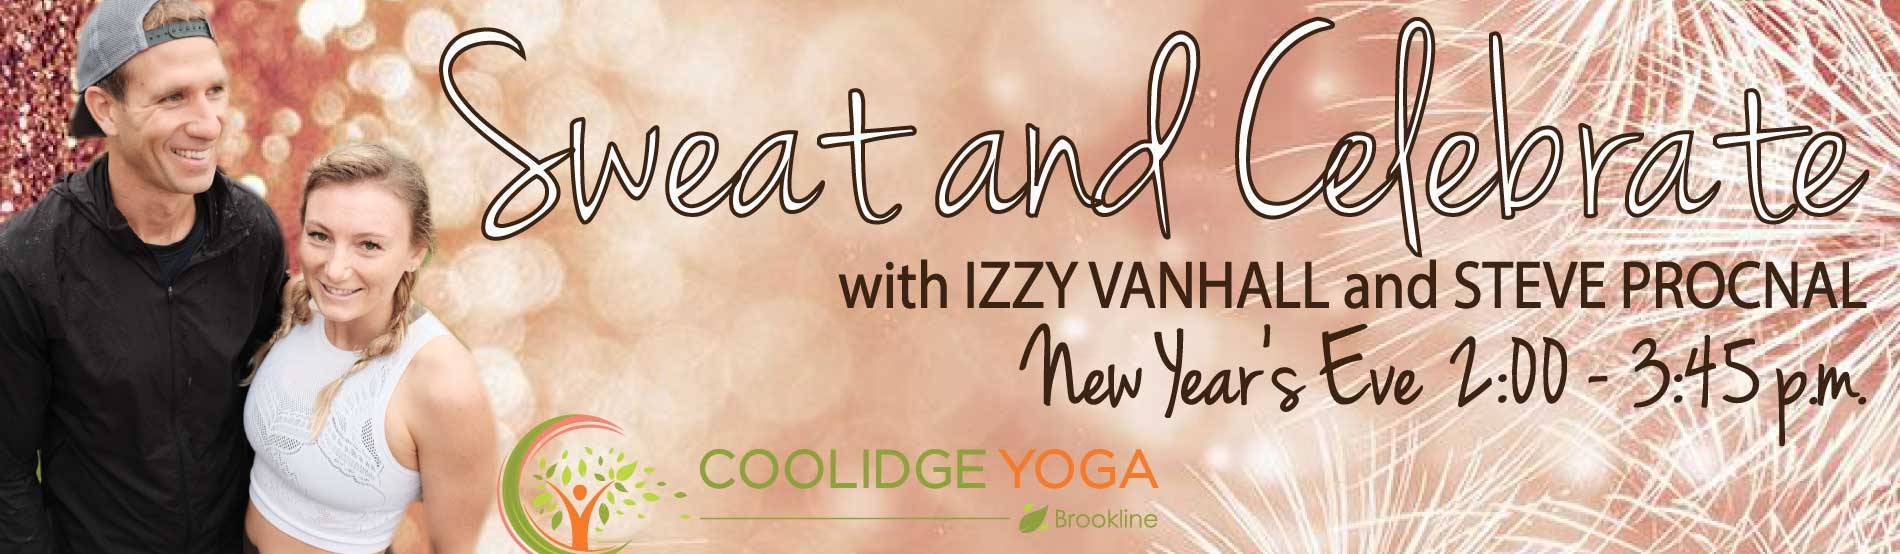 New Year's Eve Class with Izzy Van Hall